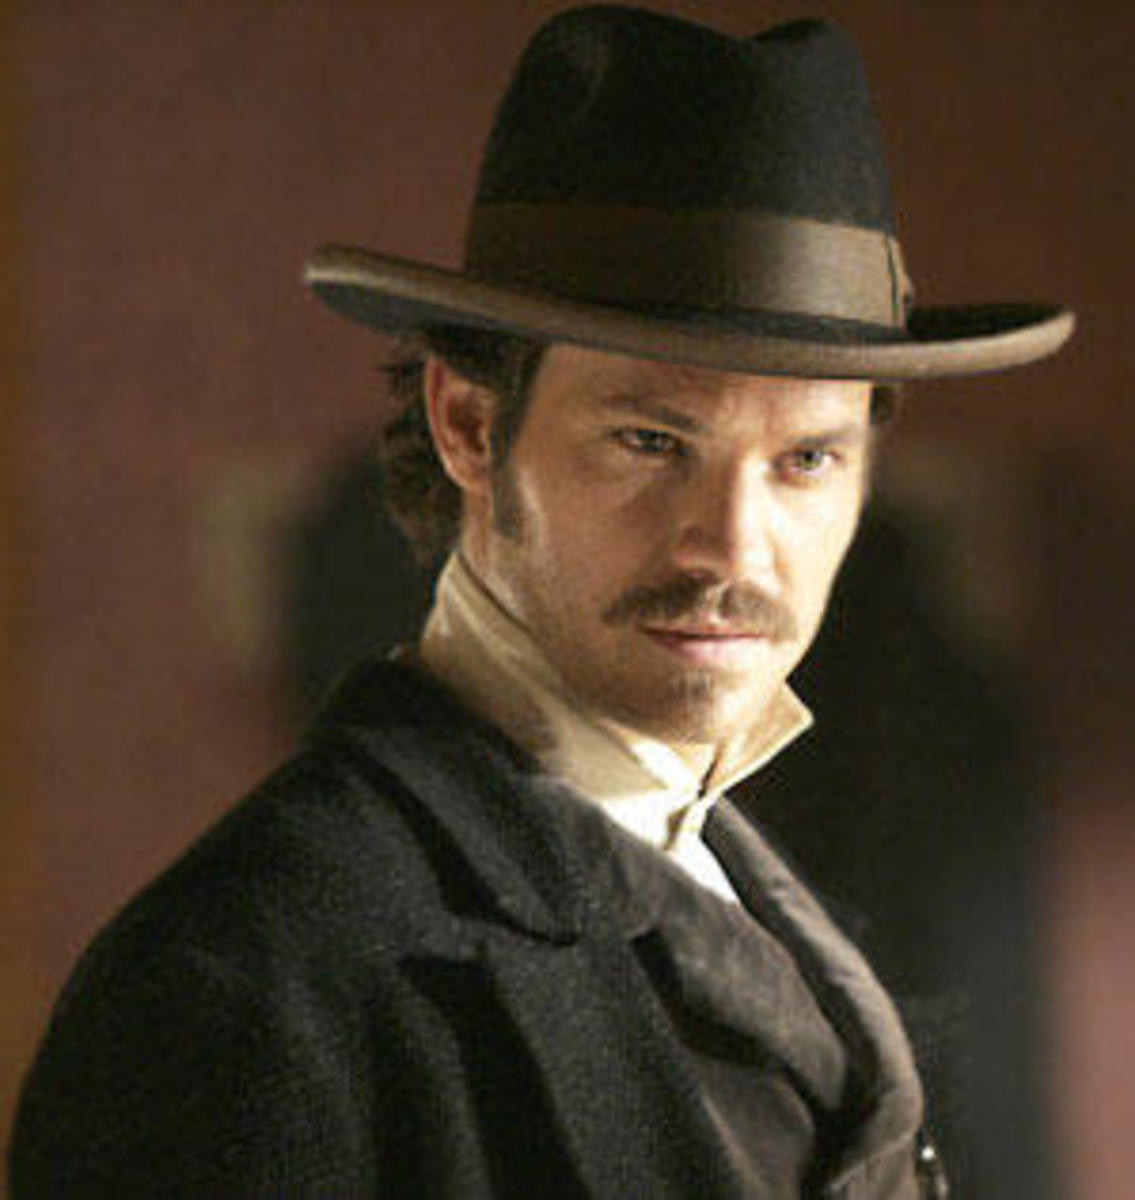 Timothy Olyphant (there are better pictures of him that prove my point, but in this one he is wearing period clothes and has a mustache. I couldn't resist).